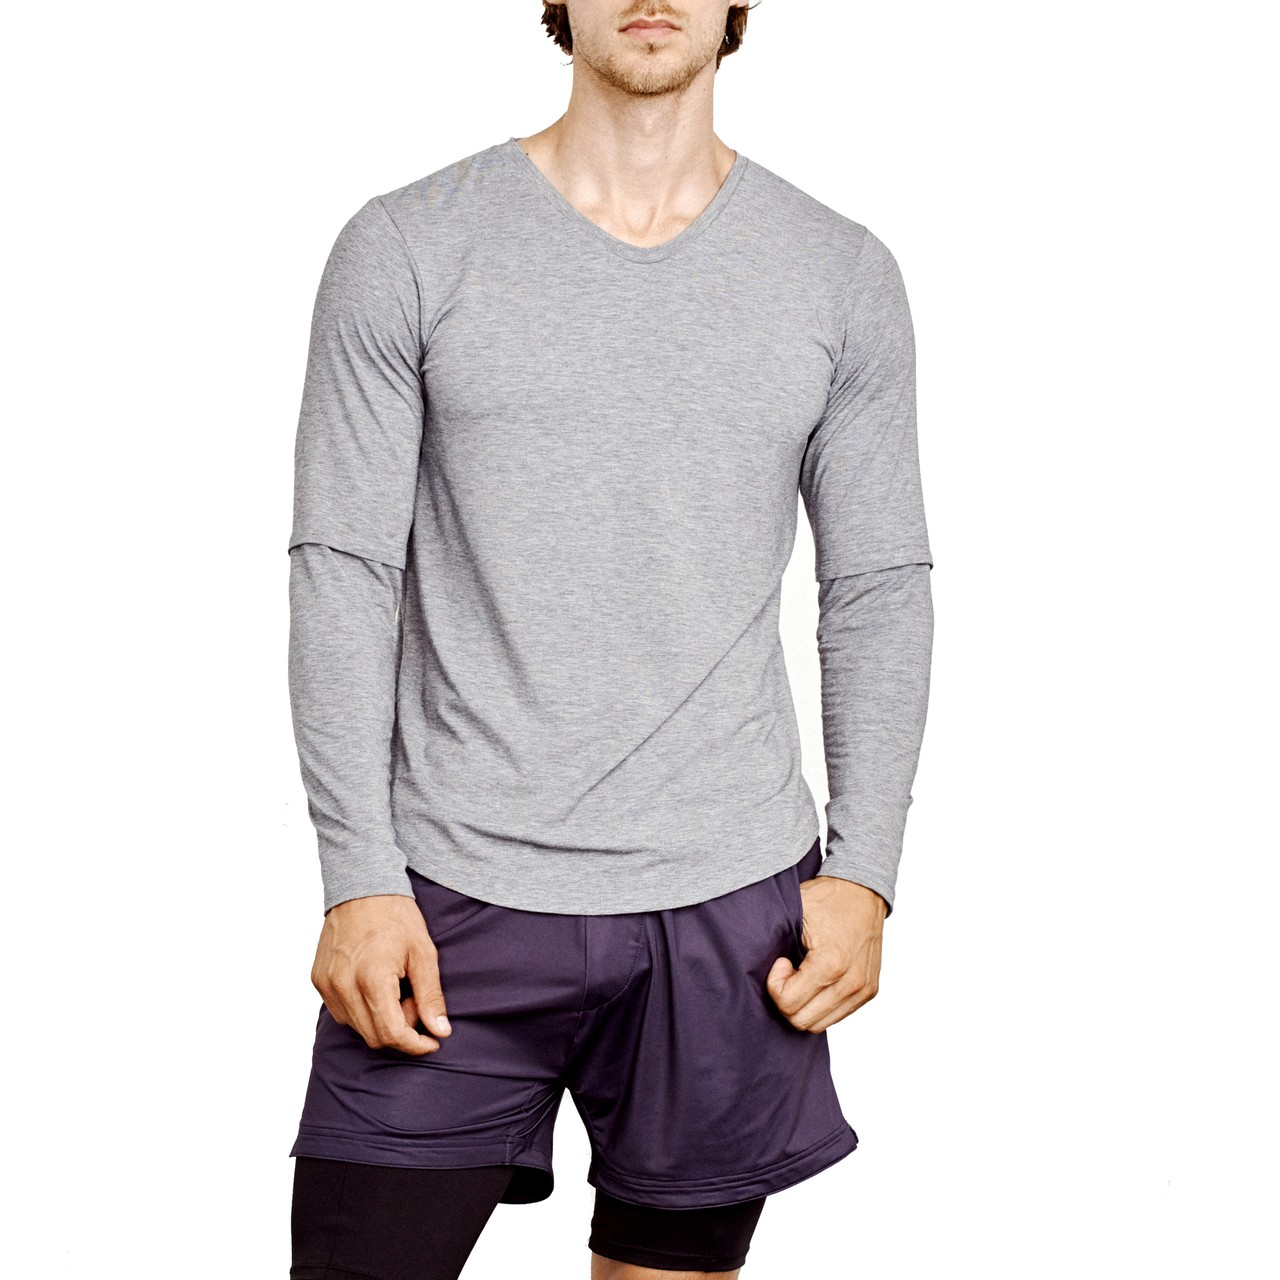 Eysom Foundation L/S Scoop Tee Heather Grey